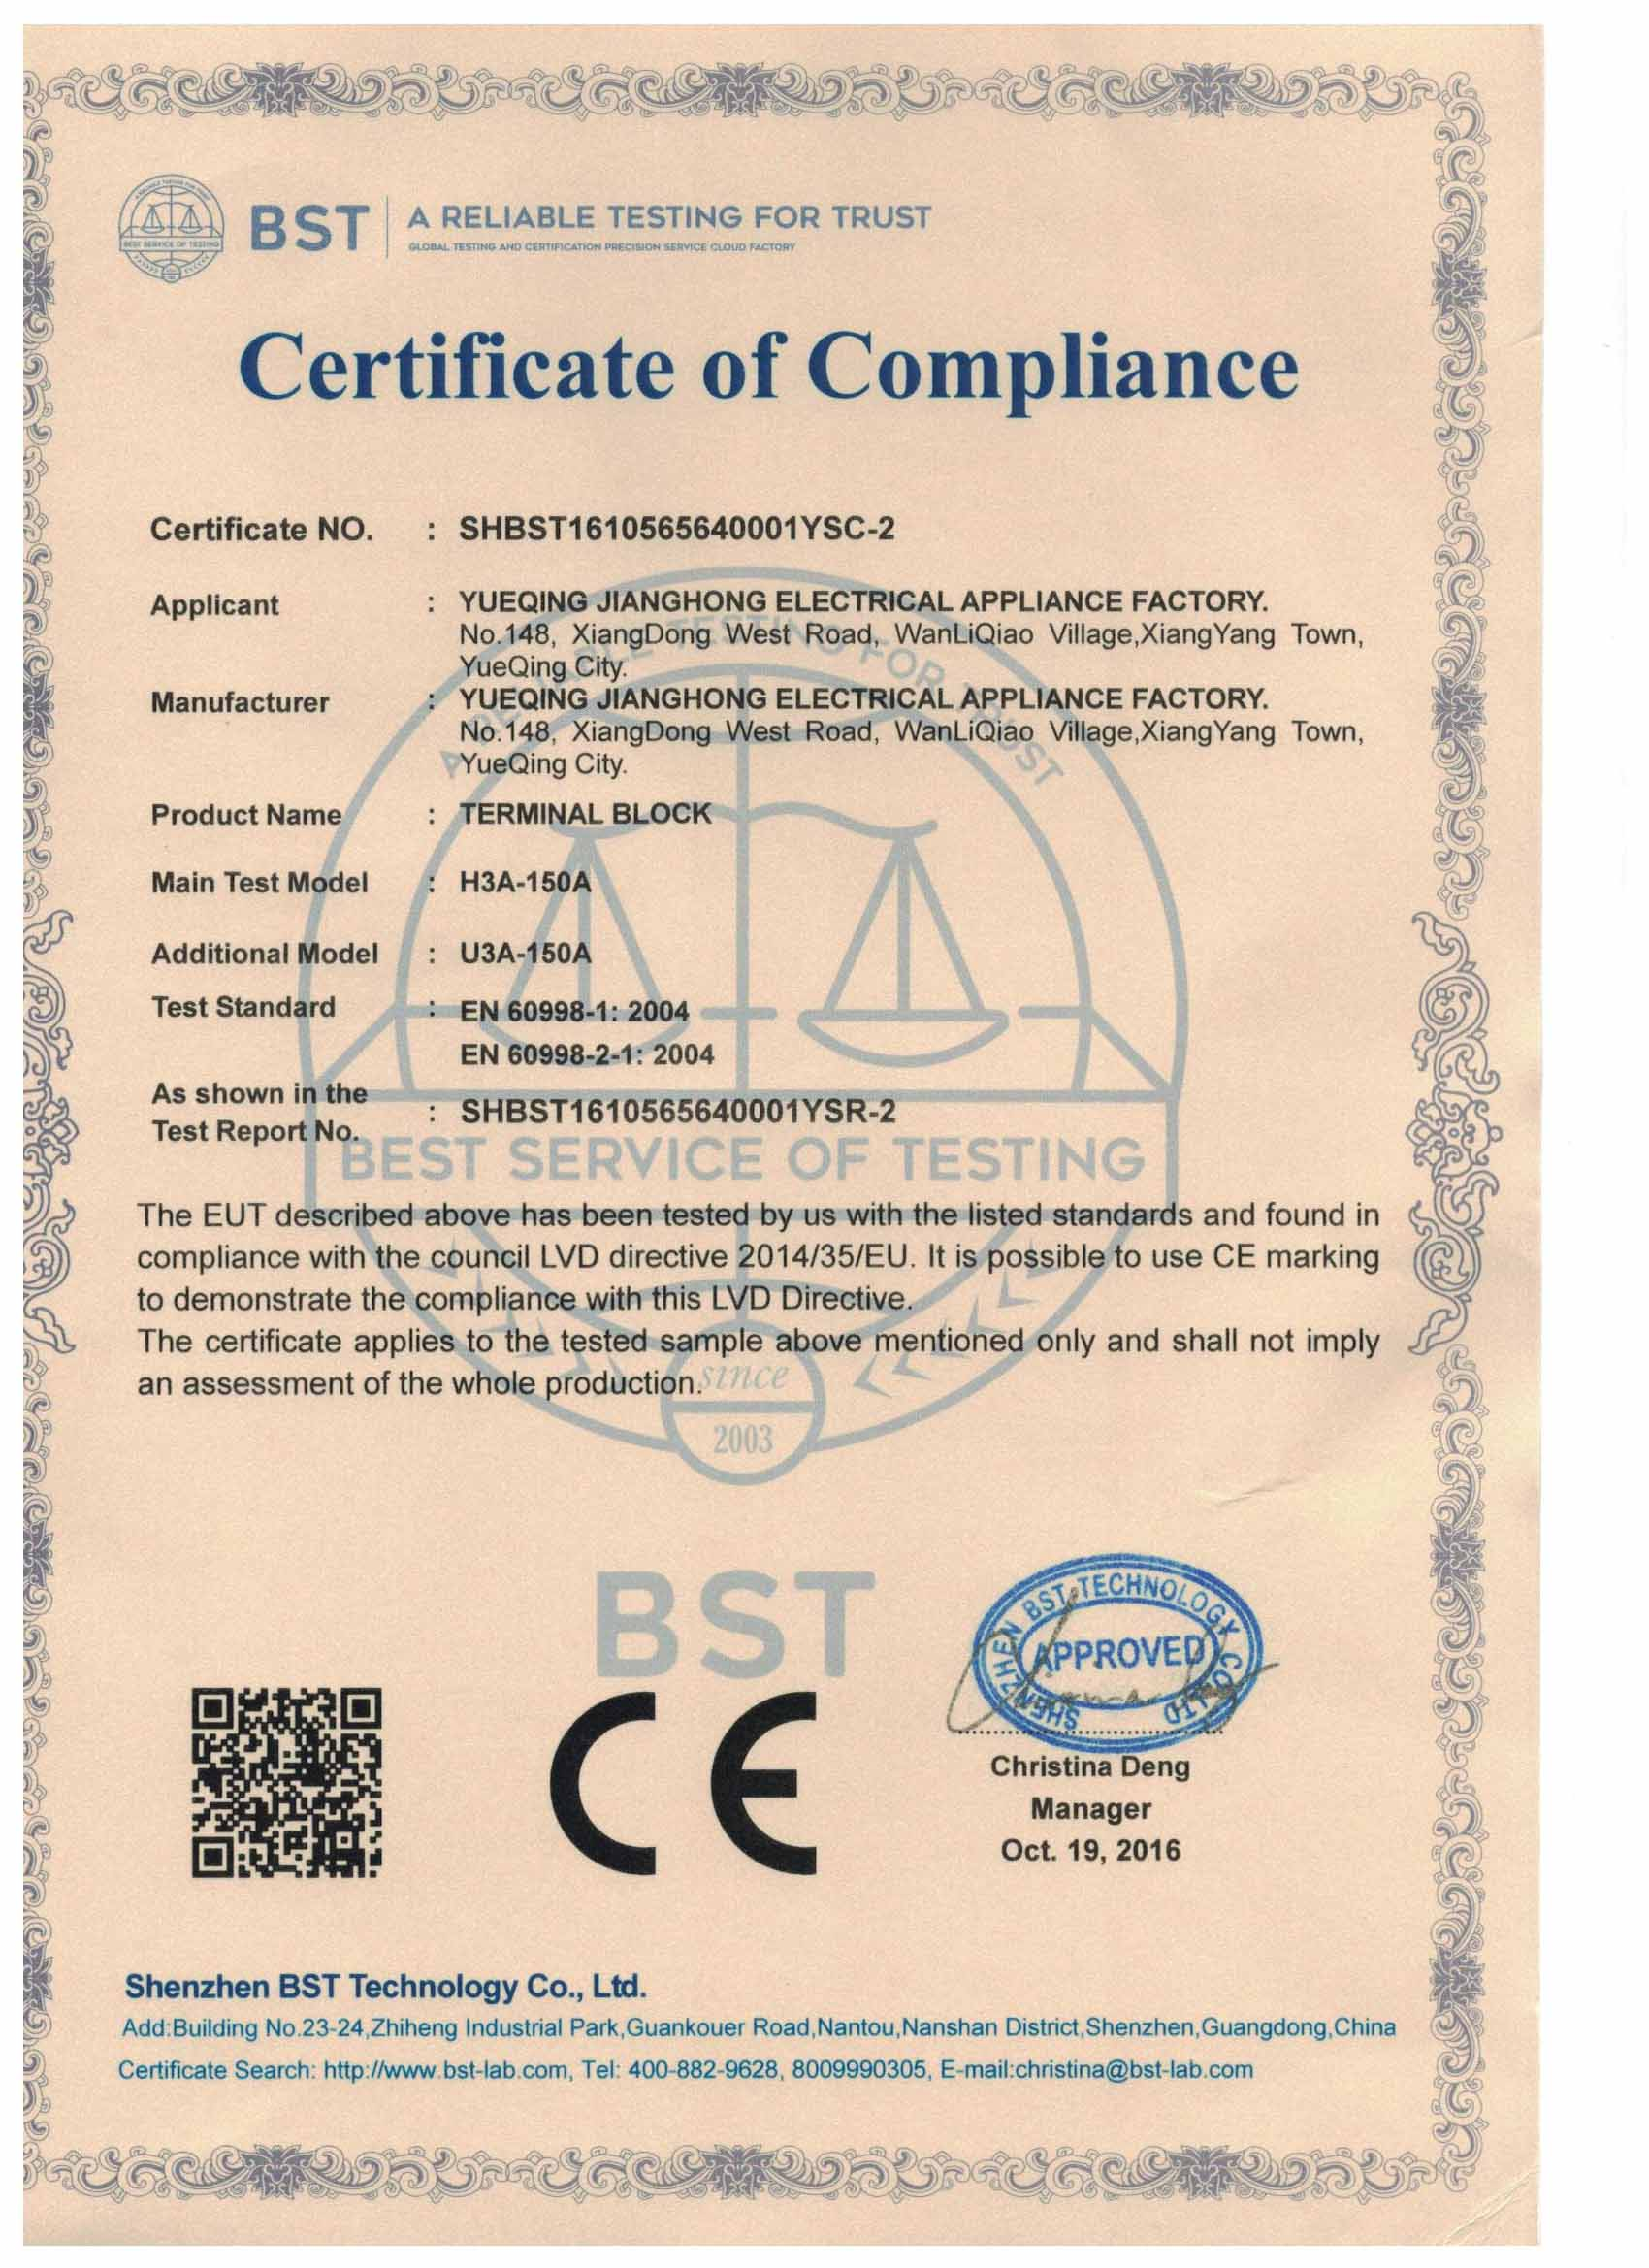 The Qualification Certificate of Terminal Block